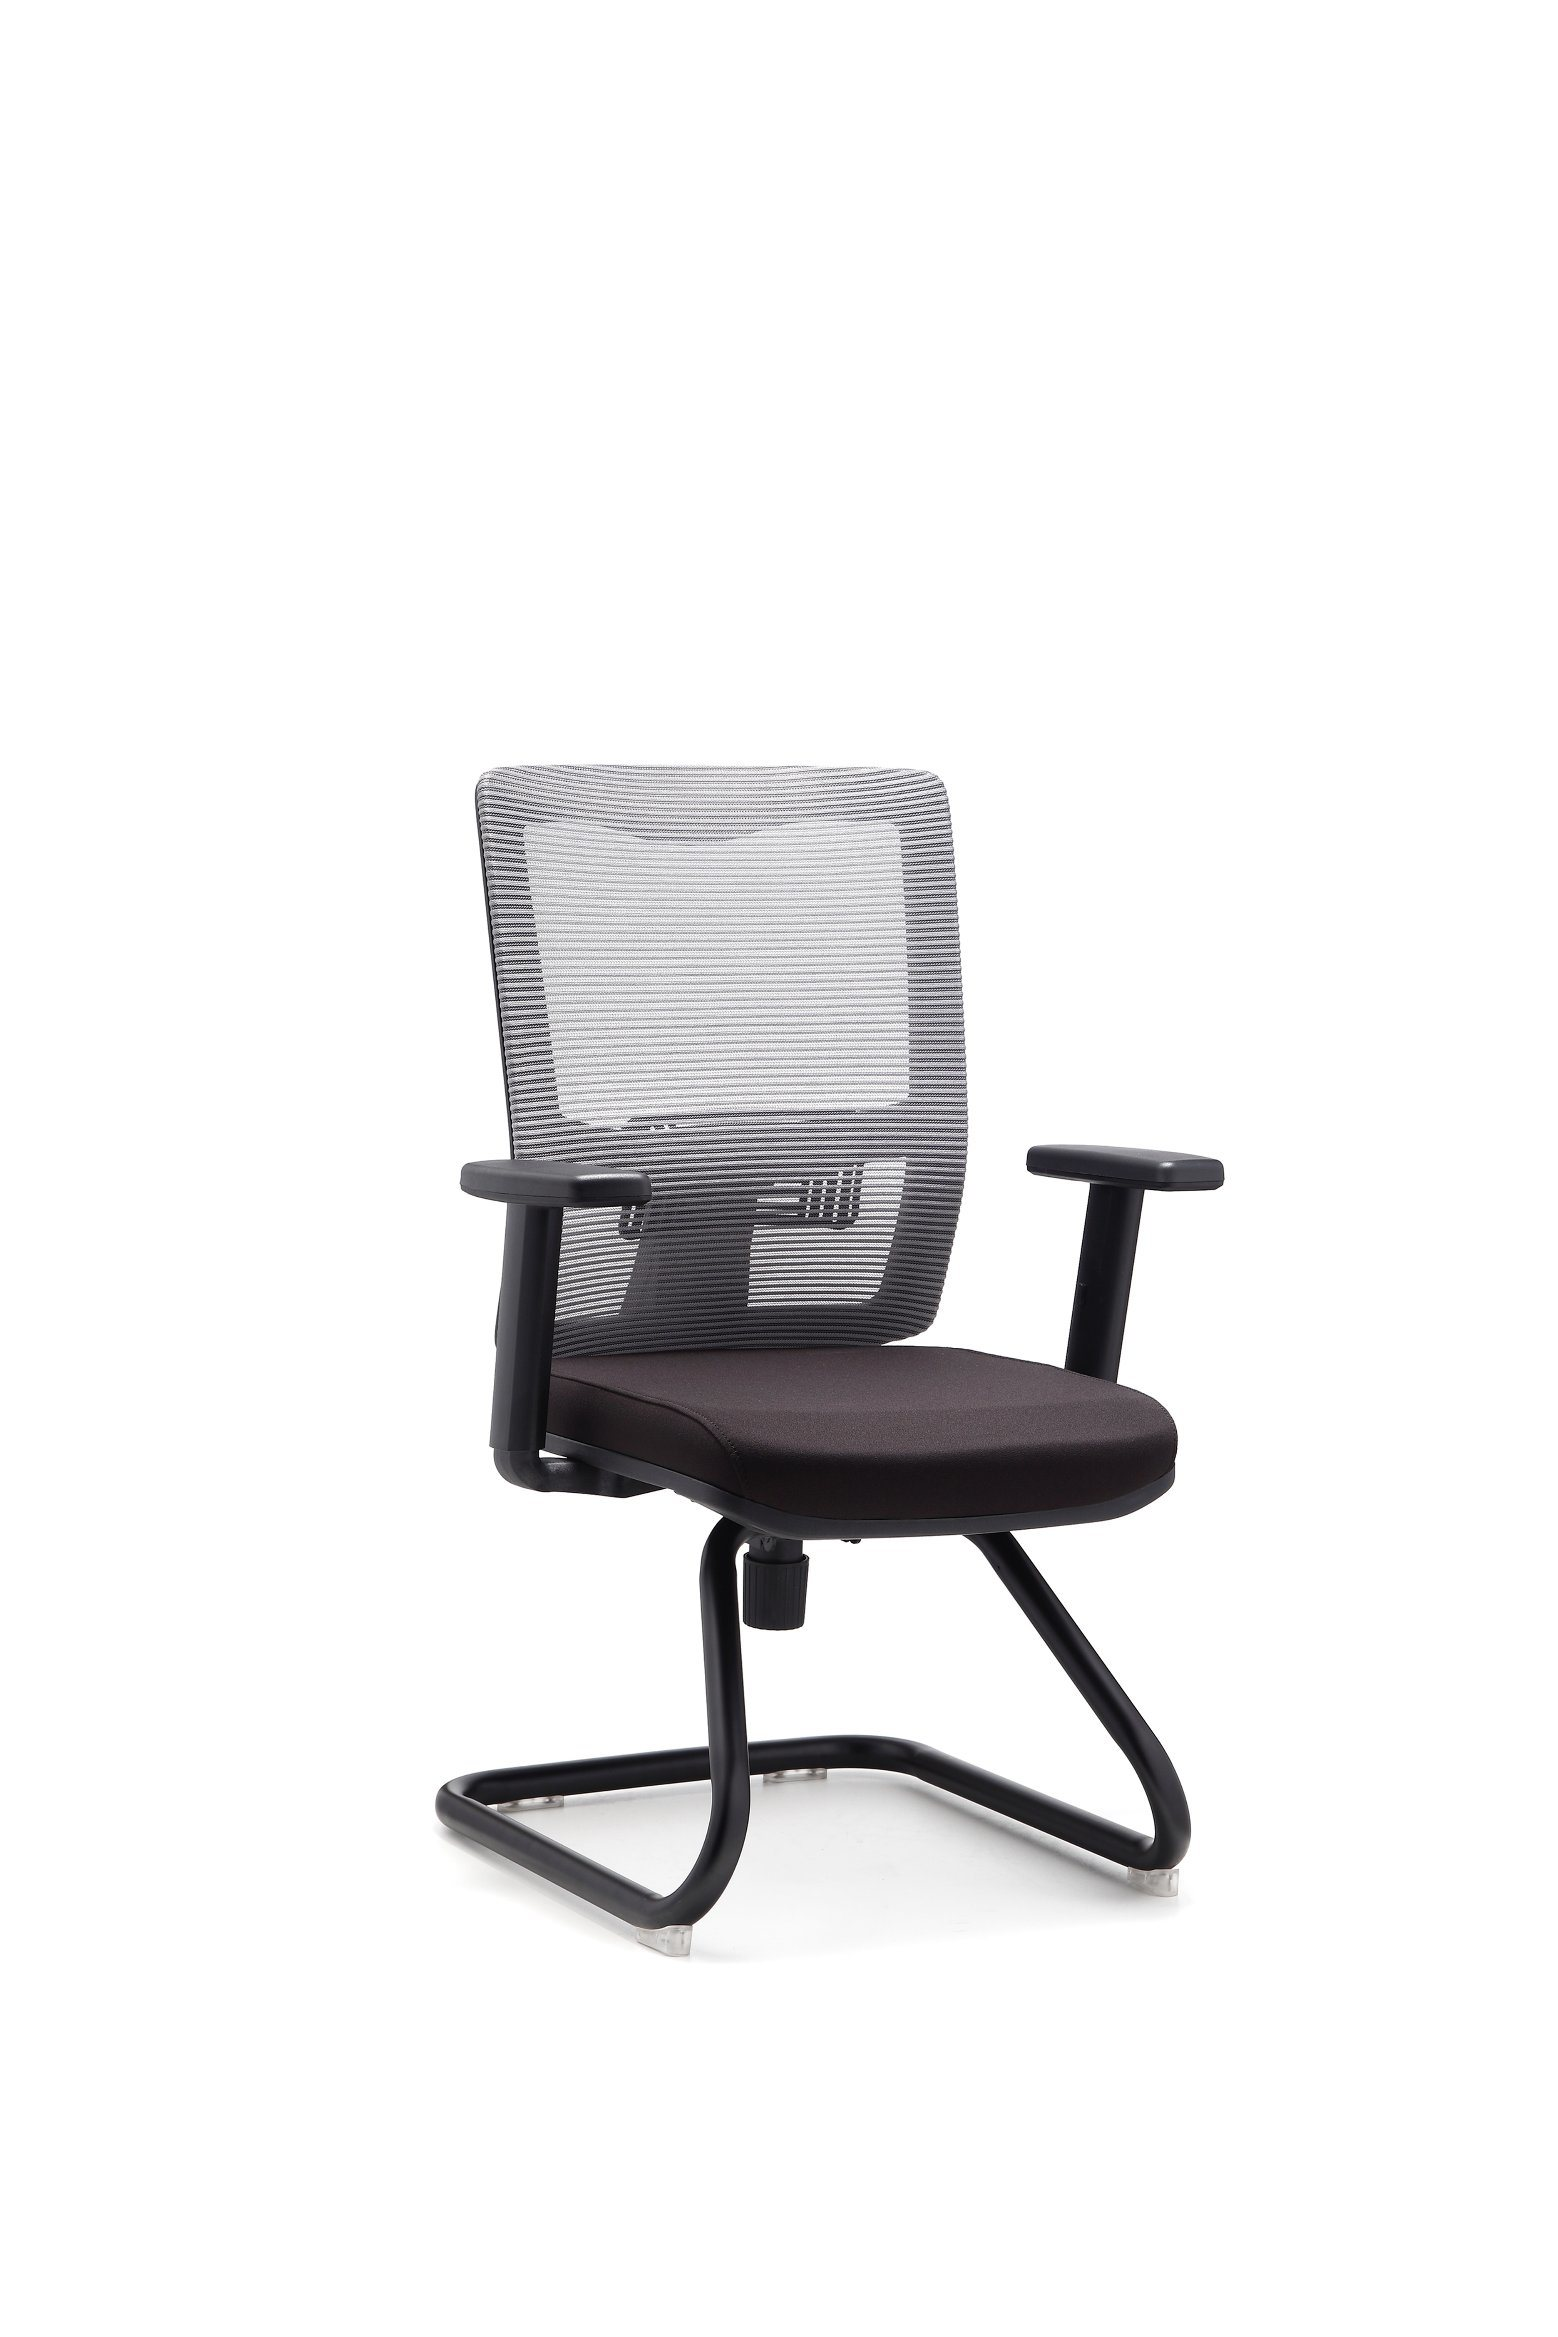 Gray Mesh Conference Chair Without Wheels (FOH-X2BB-1)